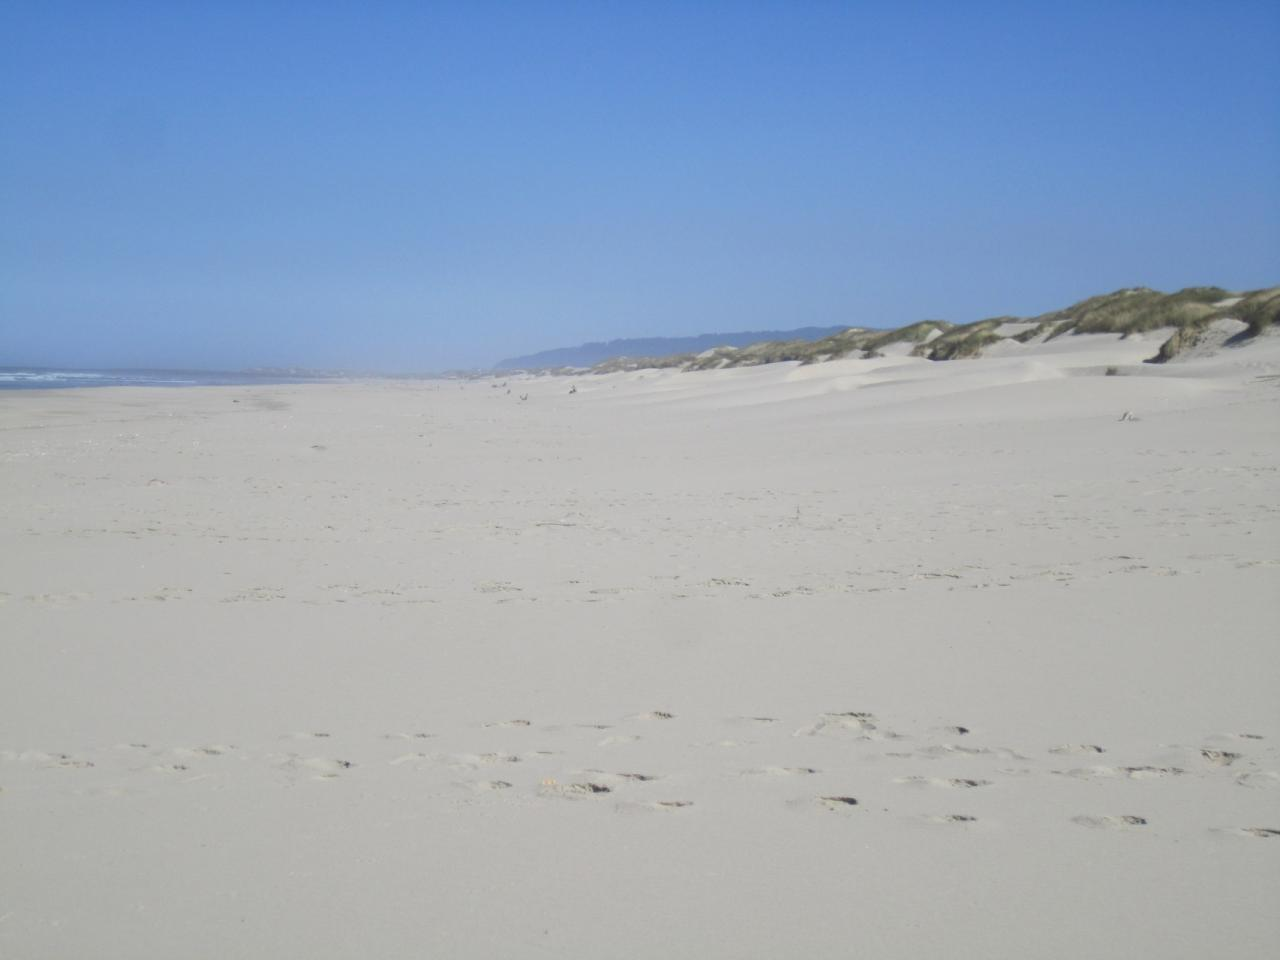 Just beach and footprints